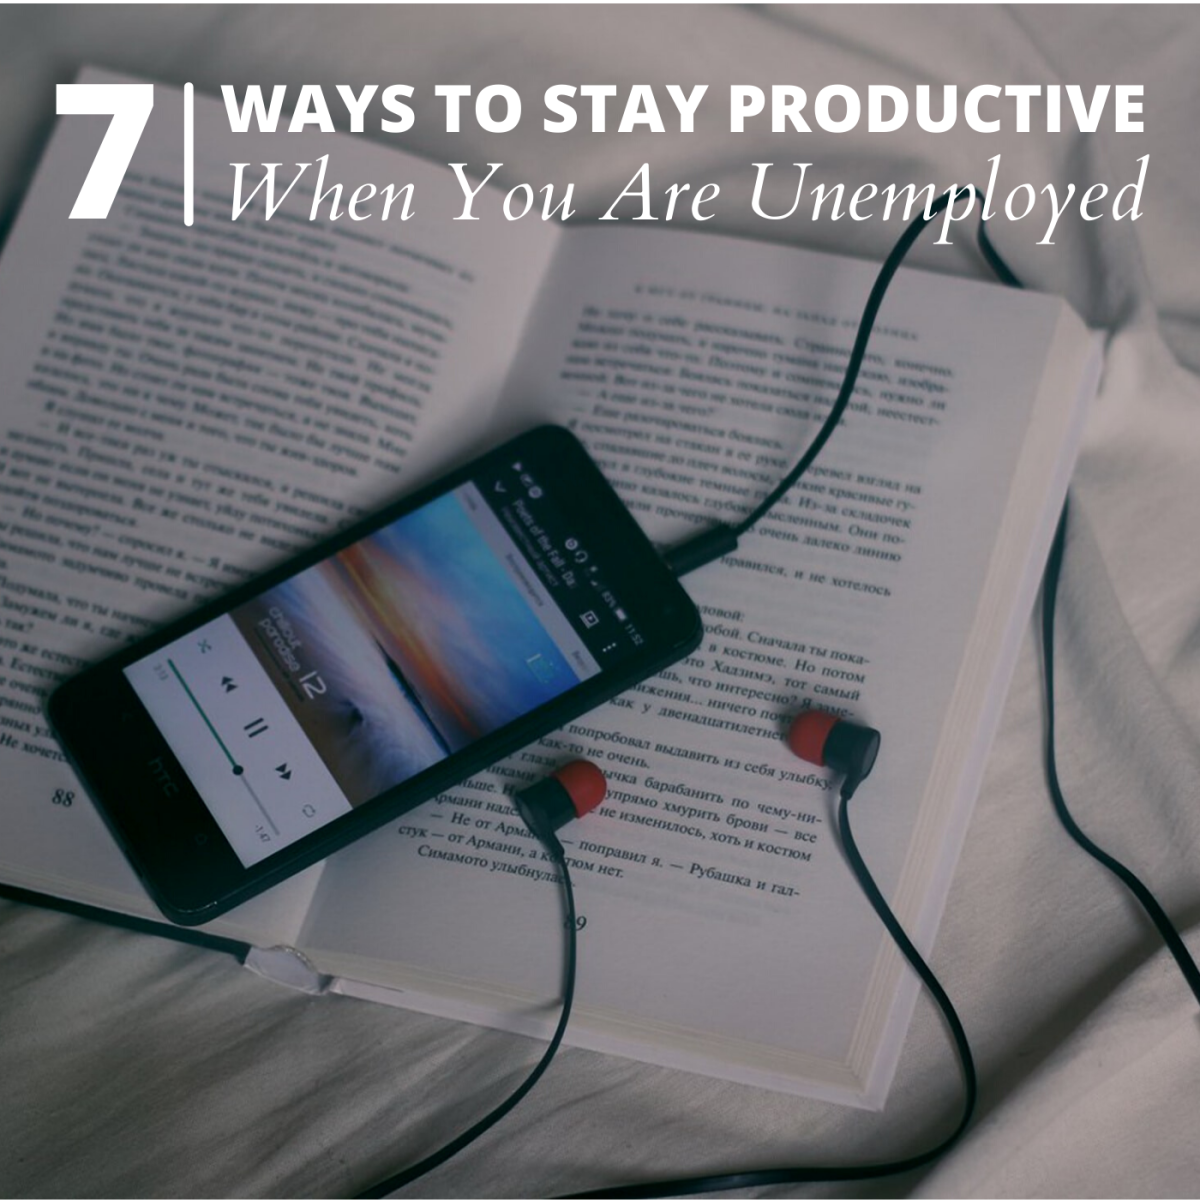 Languishing in unemployment? These seven activities can help keep you busy and job-ready until you land your next gig.